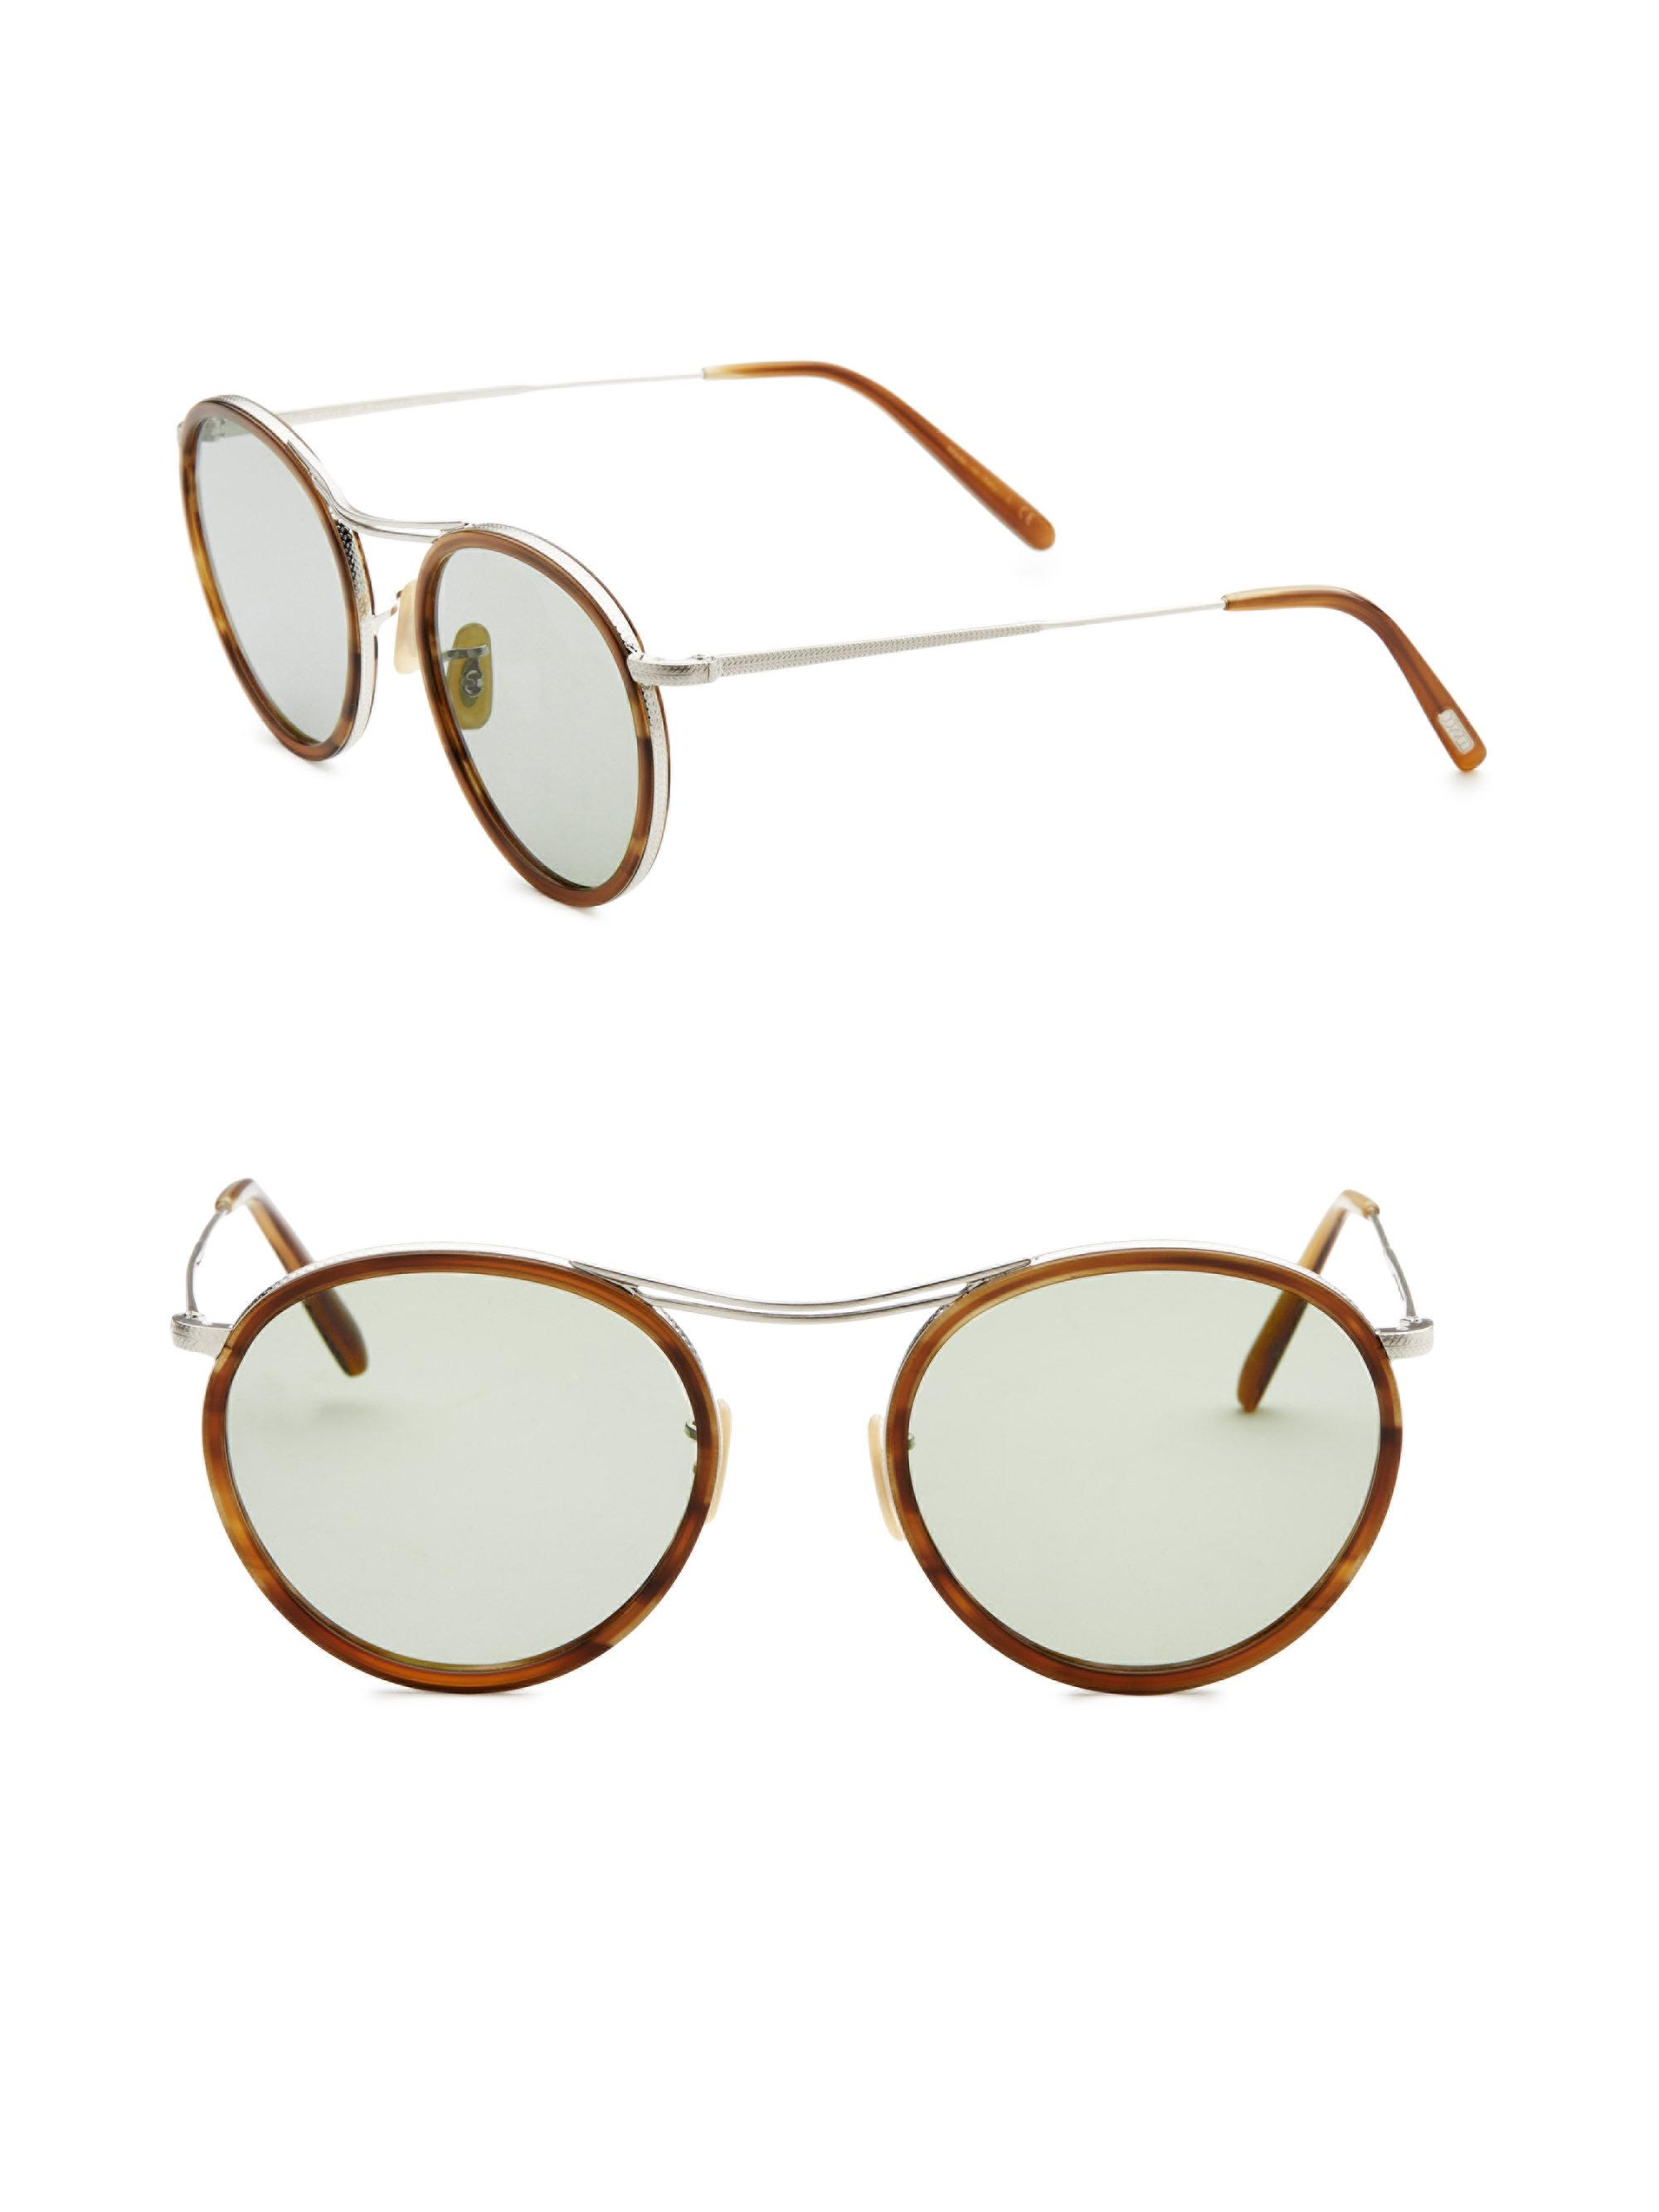 b61da136ce Oliver Peoples 51mm Round Sunglasses in Brown for Men - Lyst